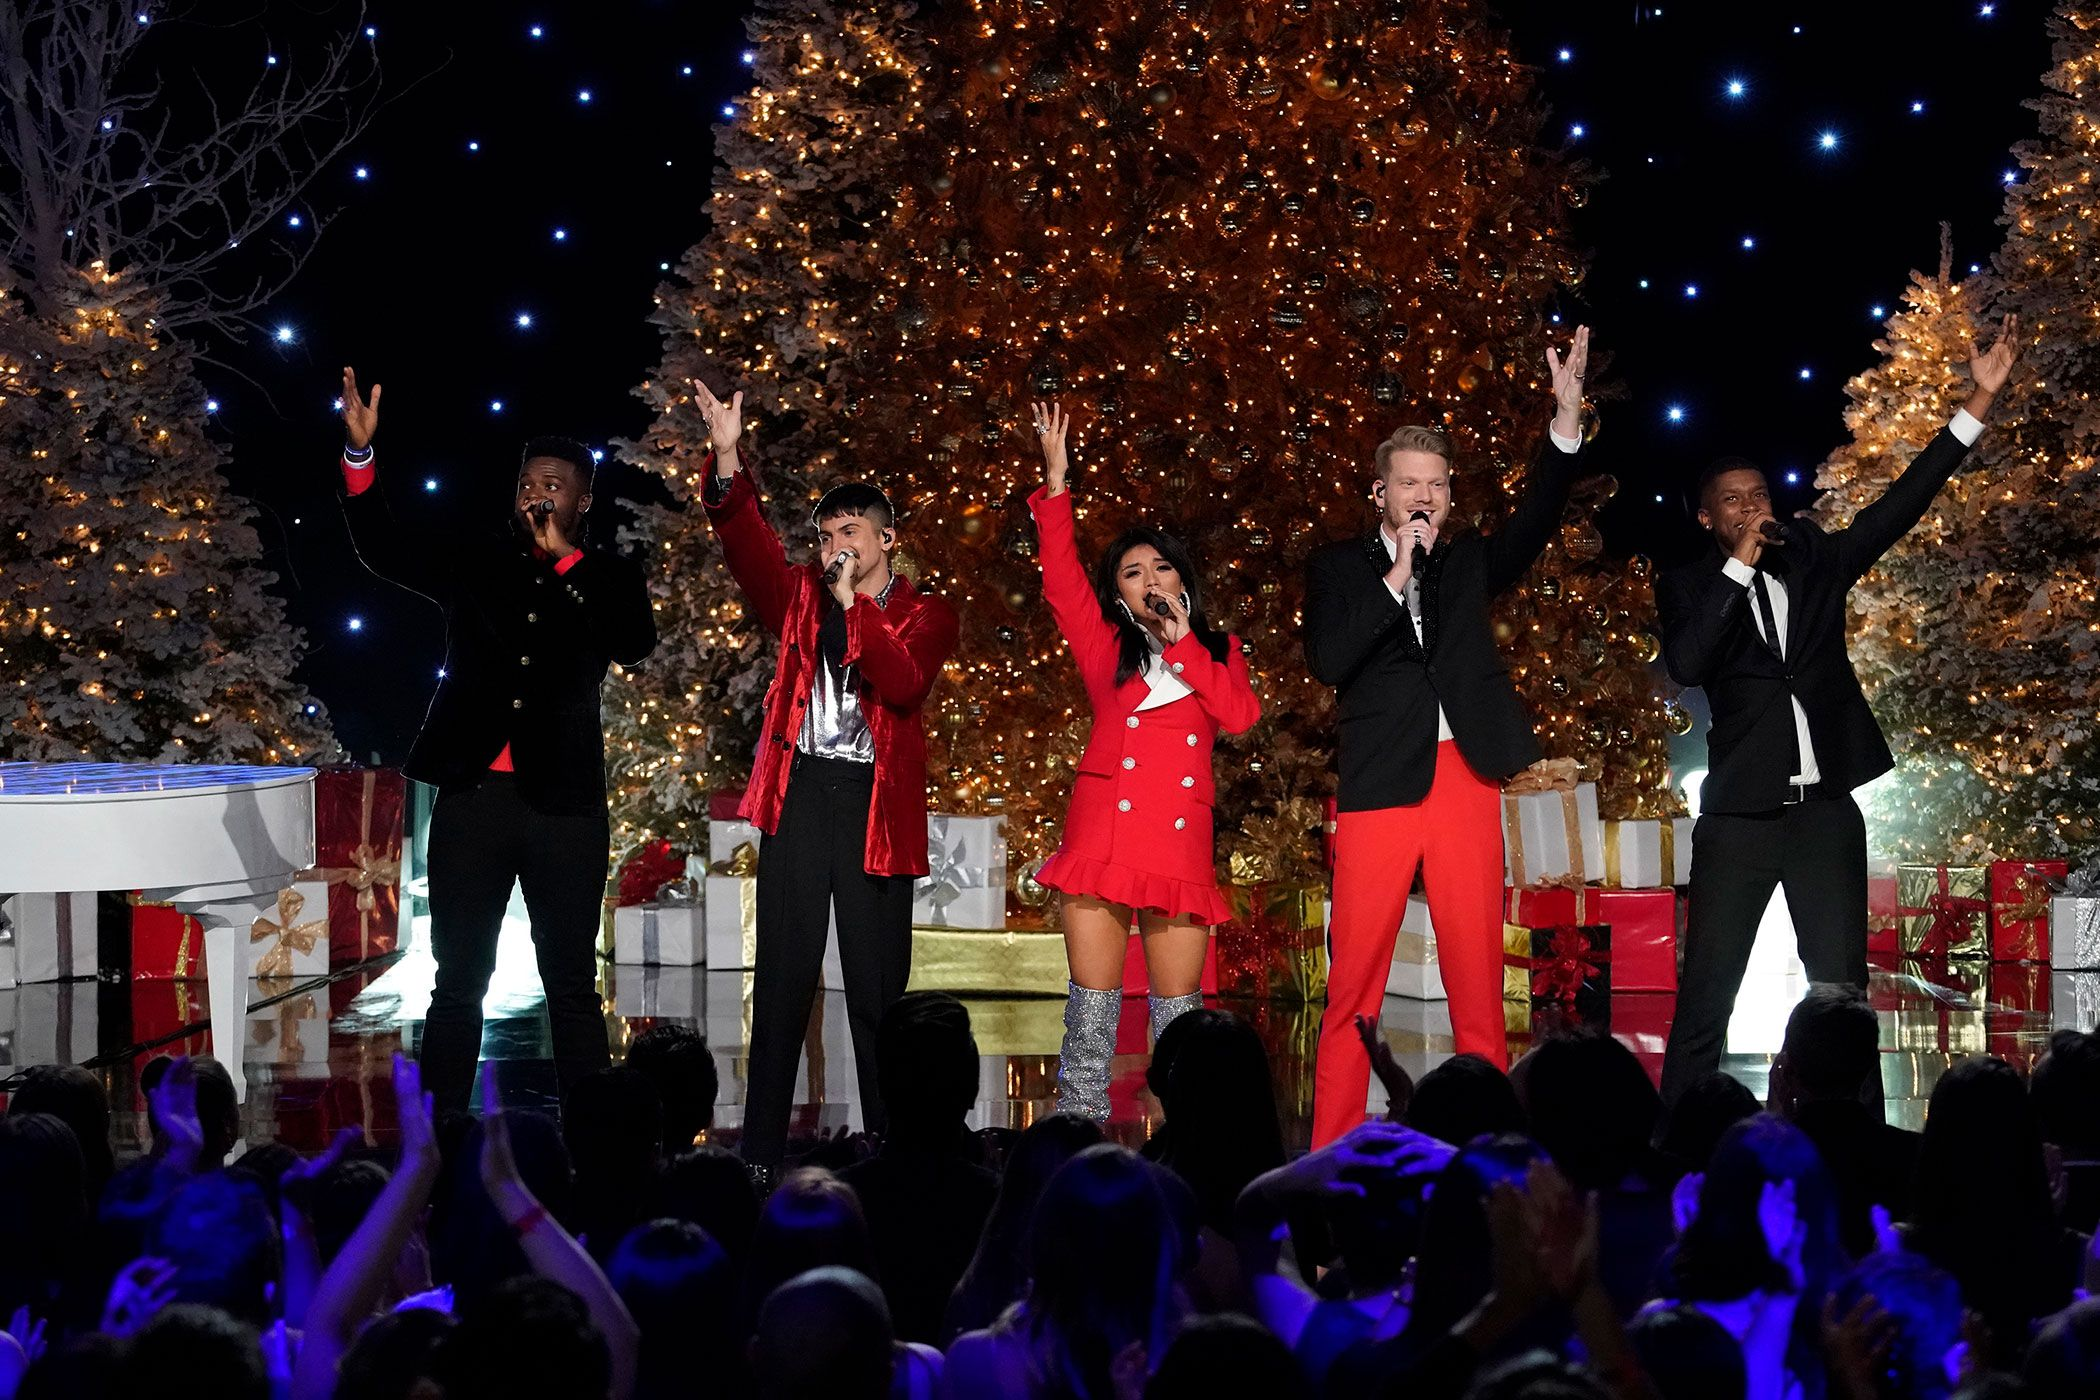 Ptx Christmas Special 2020 Pentatonix 2018 Christmas Special   Date, Guest Stars and How to Watch